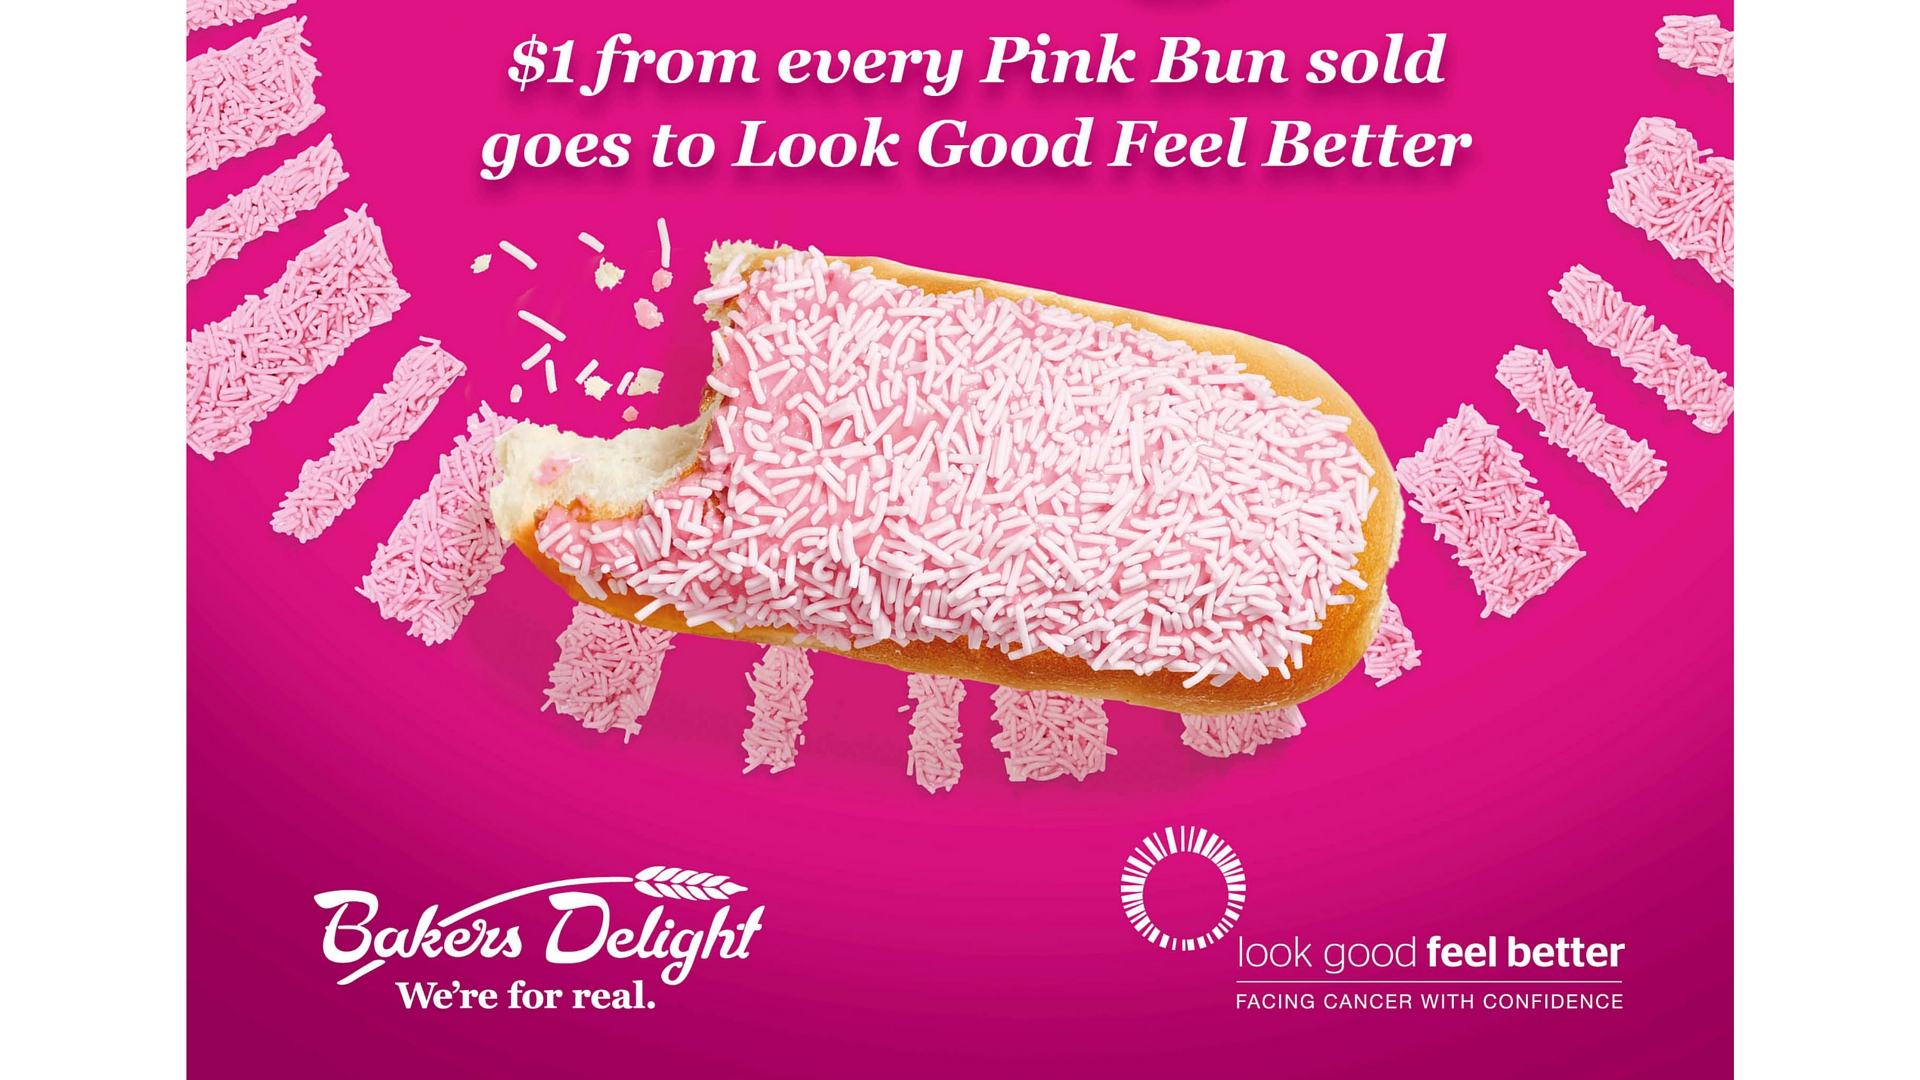 Bakers Delight banner.jpg